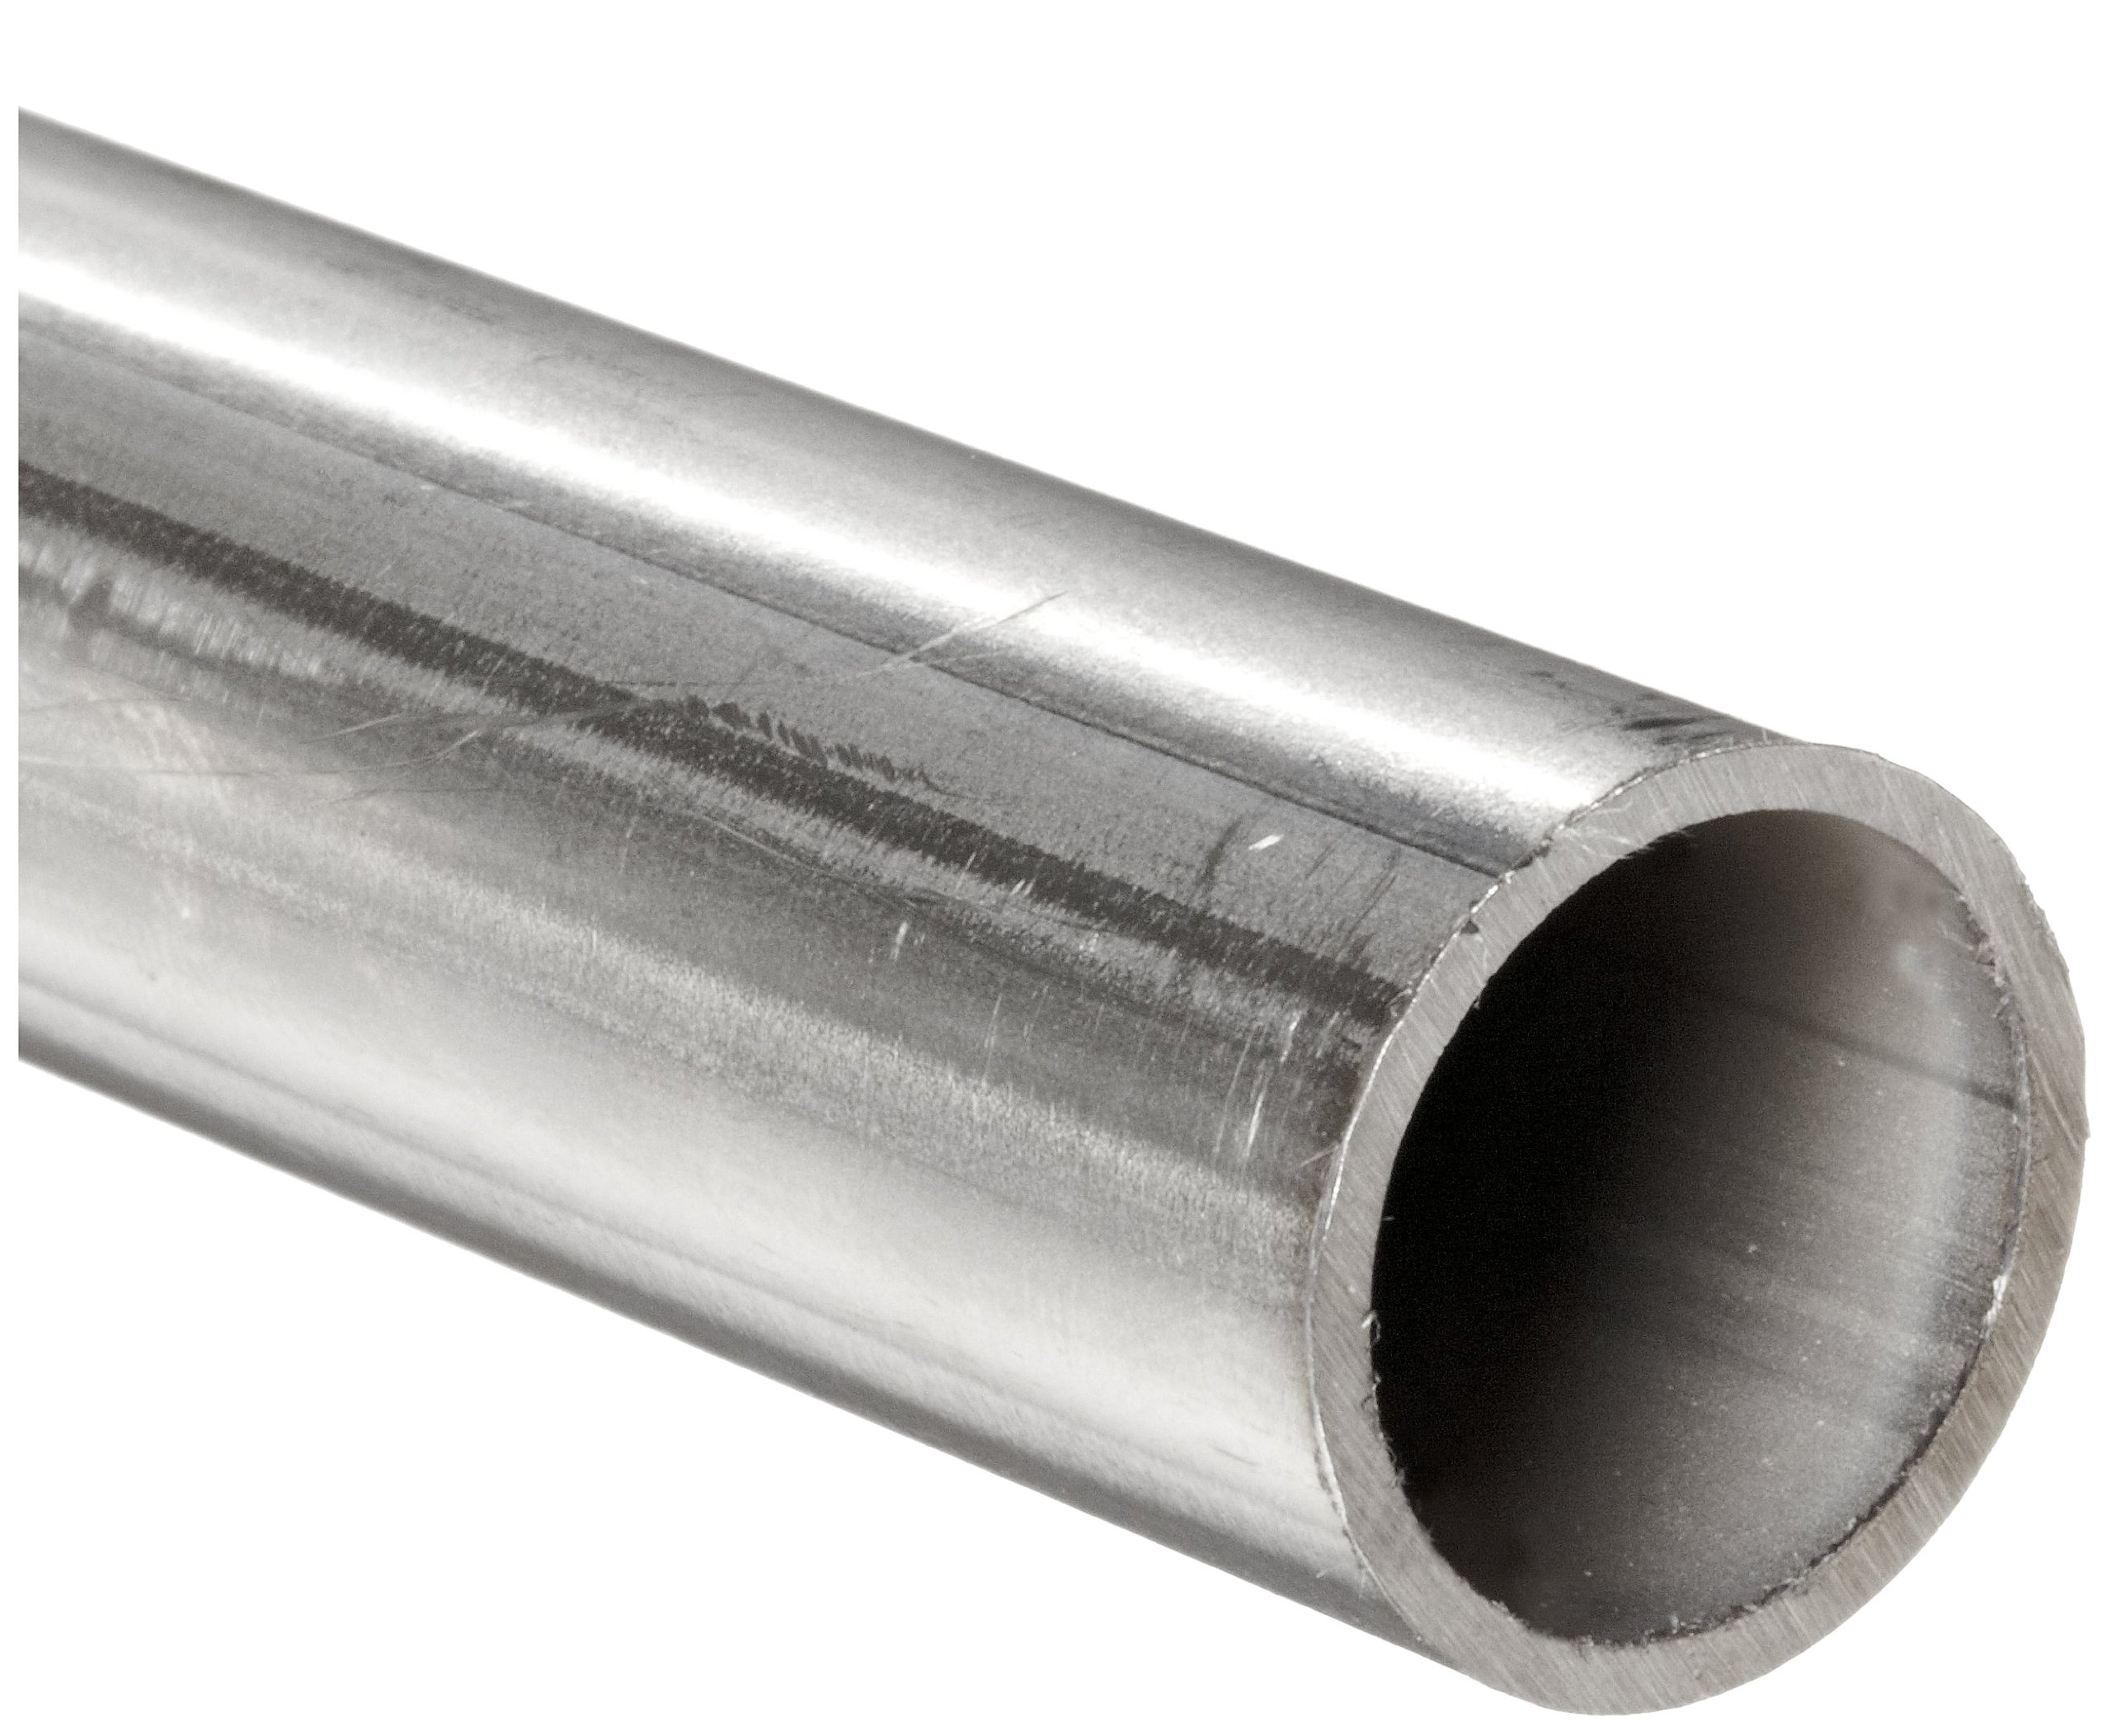 Stainless Steel 304L Welded Round Tubing, 1/2'' OD, 0.43'' ID, 0.035'' Wall, 36'' Length by Small Parts